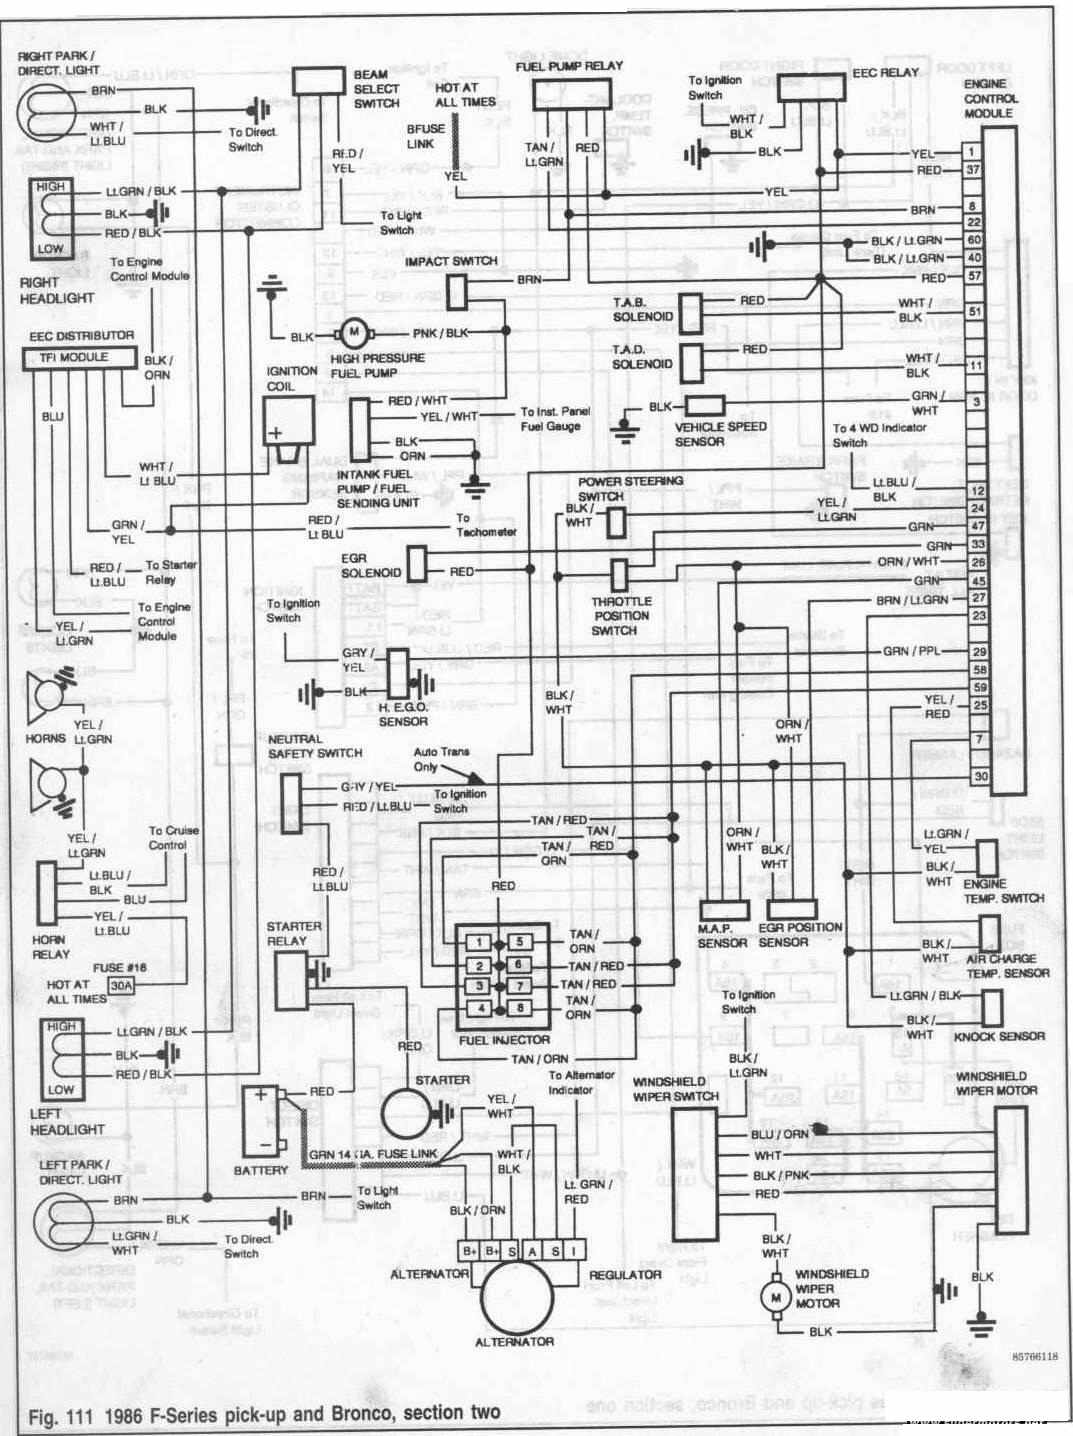 85 Ford Bronco Wiring Diagram | Wiring Diagram  Mustang Fuse Box Free Download Wiring Diagram Schematic on